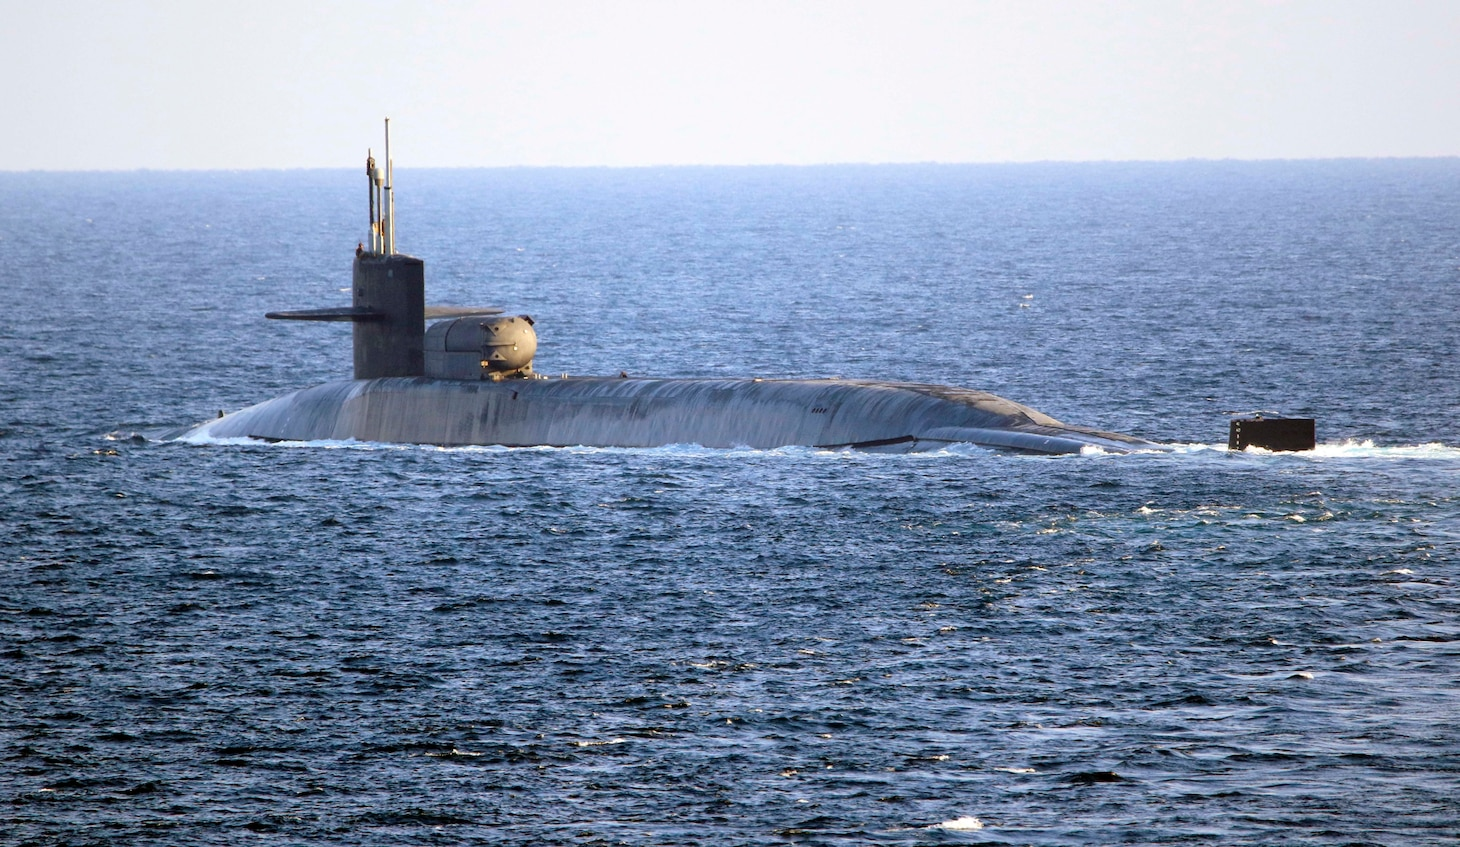 The guided-missile submarine USS Georgia (SSGN 729) transits the Strait of Hormuz, Dec. 21. Georgia is deployed to the U.S. 5th Fleet area of operations in support of naval operations to ensure maritime stability and security in the Central Region, connecting the Mediterranean and Pacific through the Western Indian Ocean and three critical chokepoints to the free flow of global commerce.